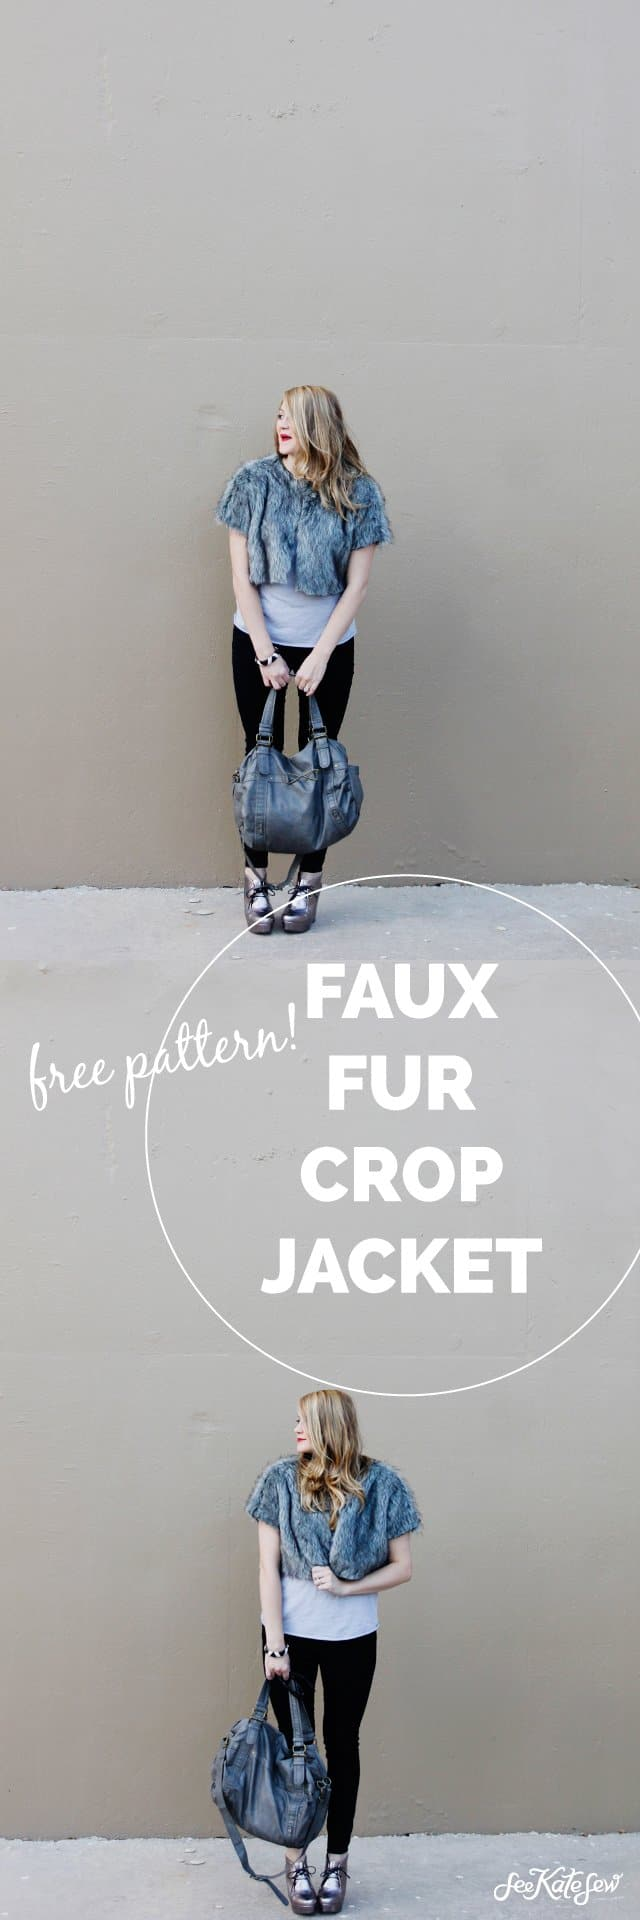 faux-fur-crop-jacket-2